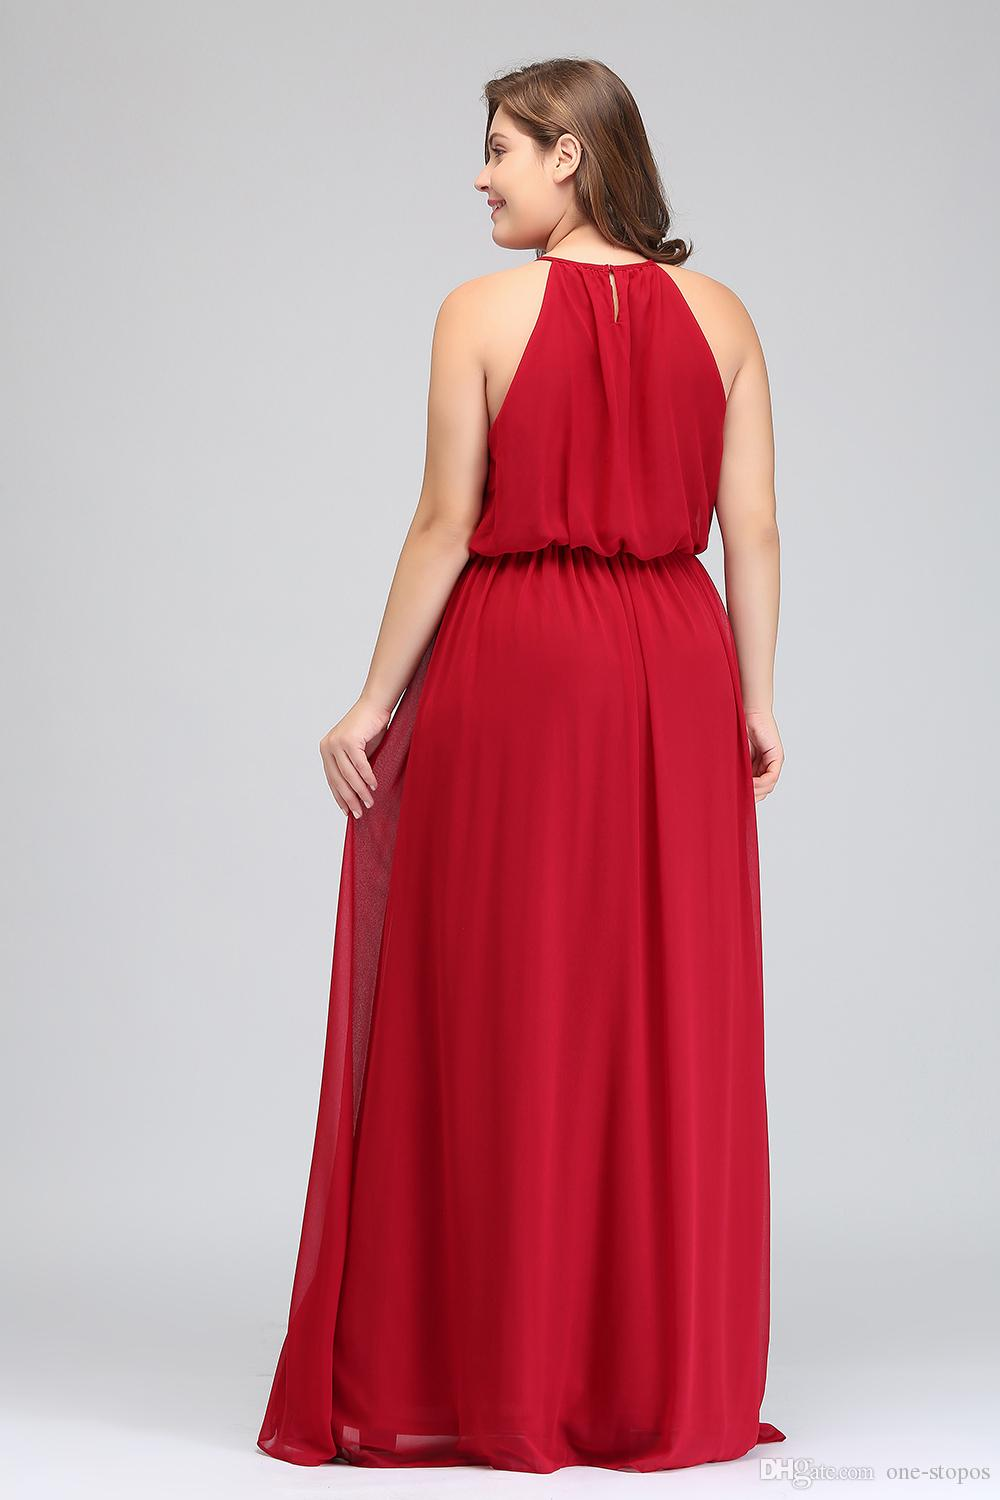 2018 Designer Long Plus Size Bridesmaid Dresses Cheap Red Chiffon Maid Of  Honor Gowns Floor Length Halter Prom Party Dress CPS618 Bridal Dressing ...